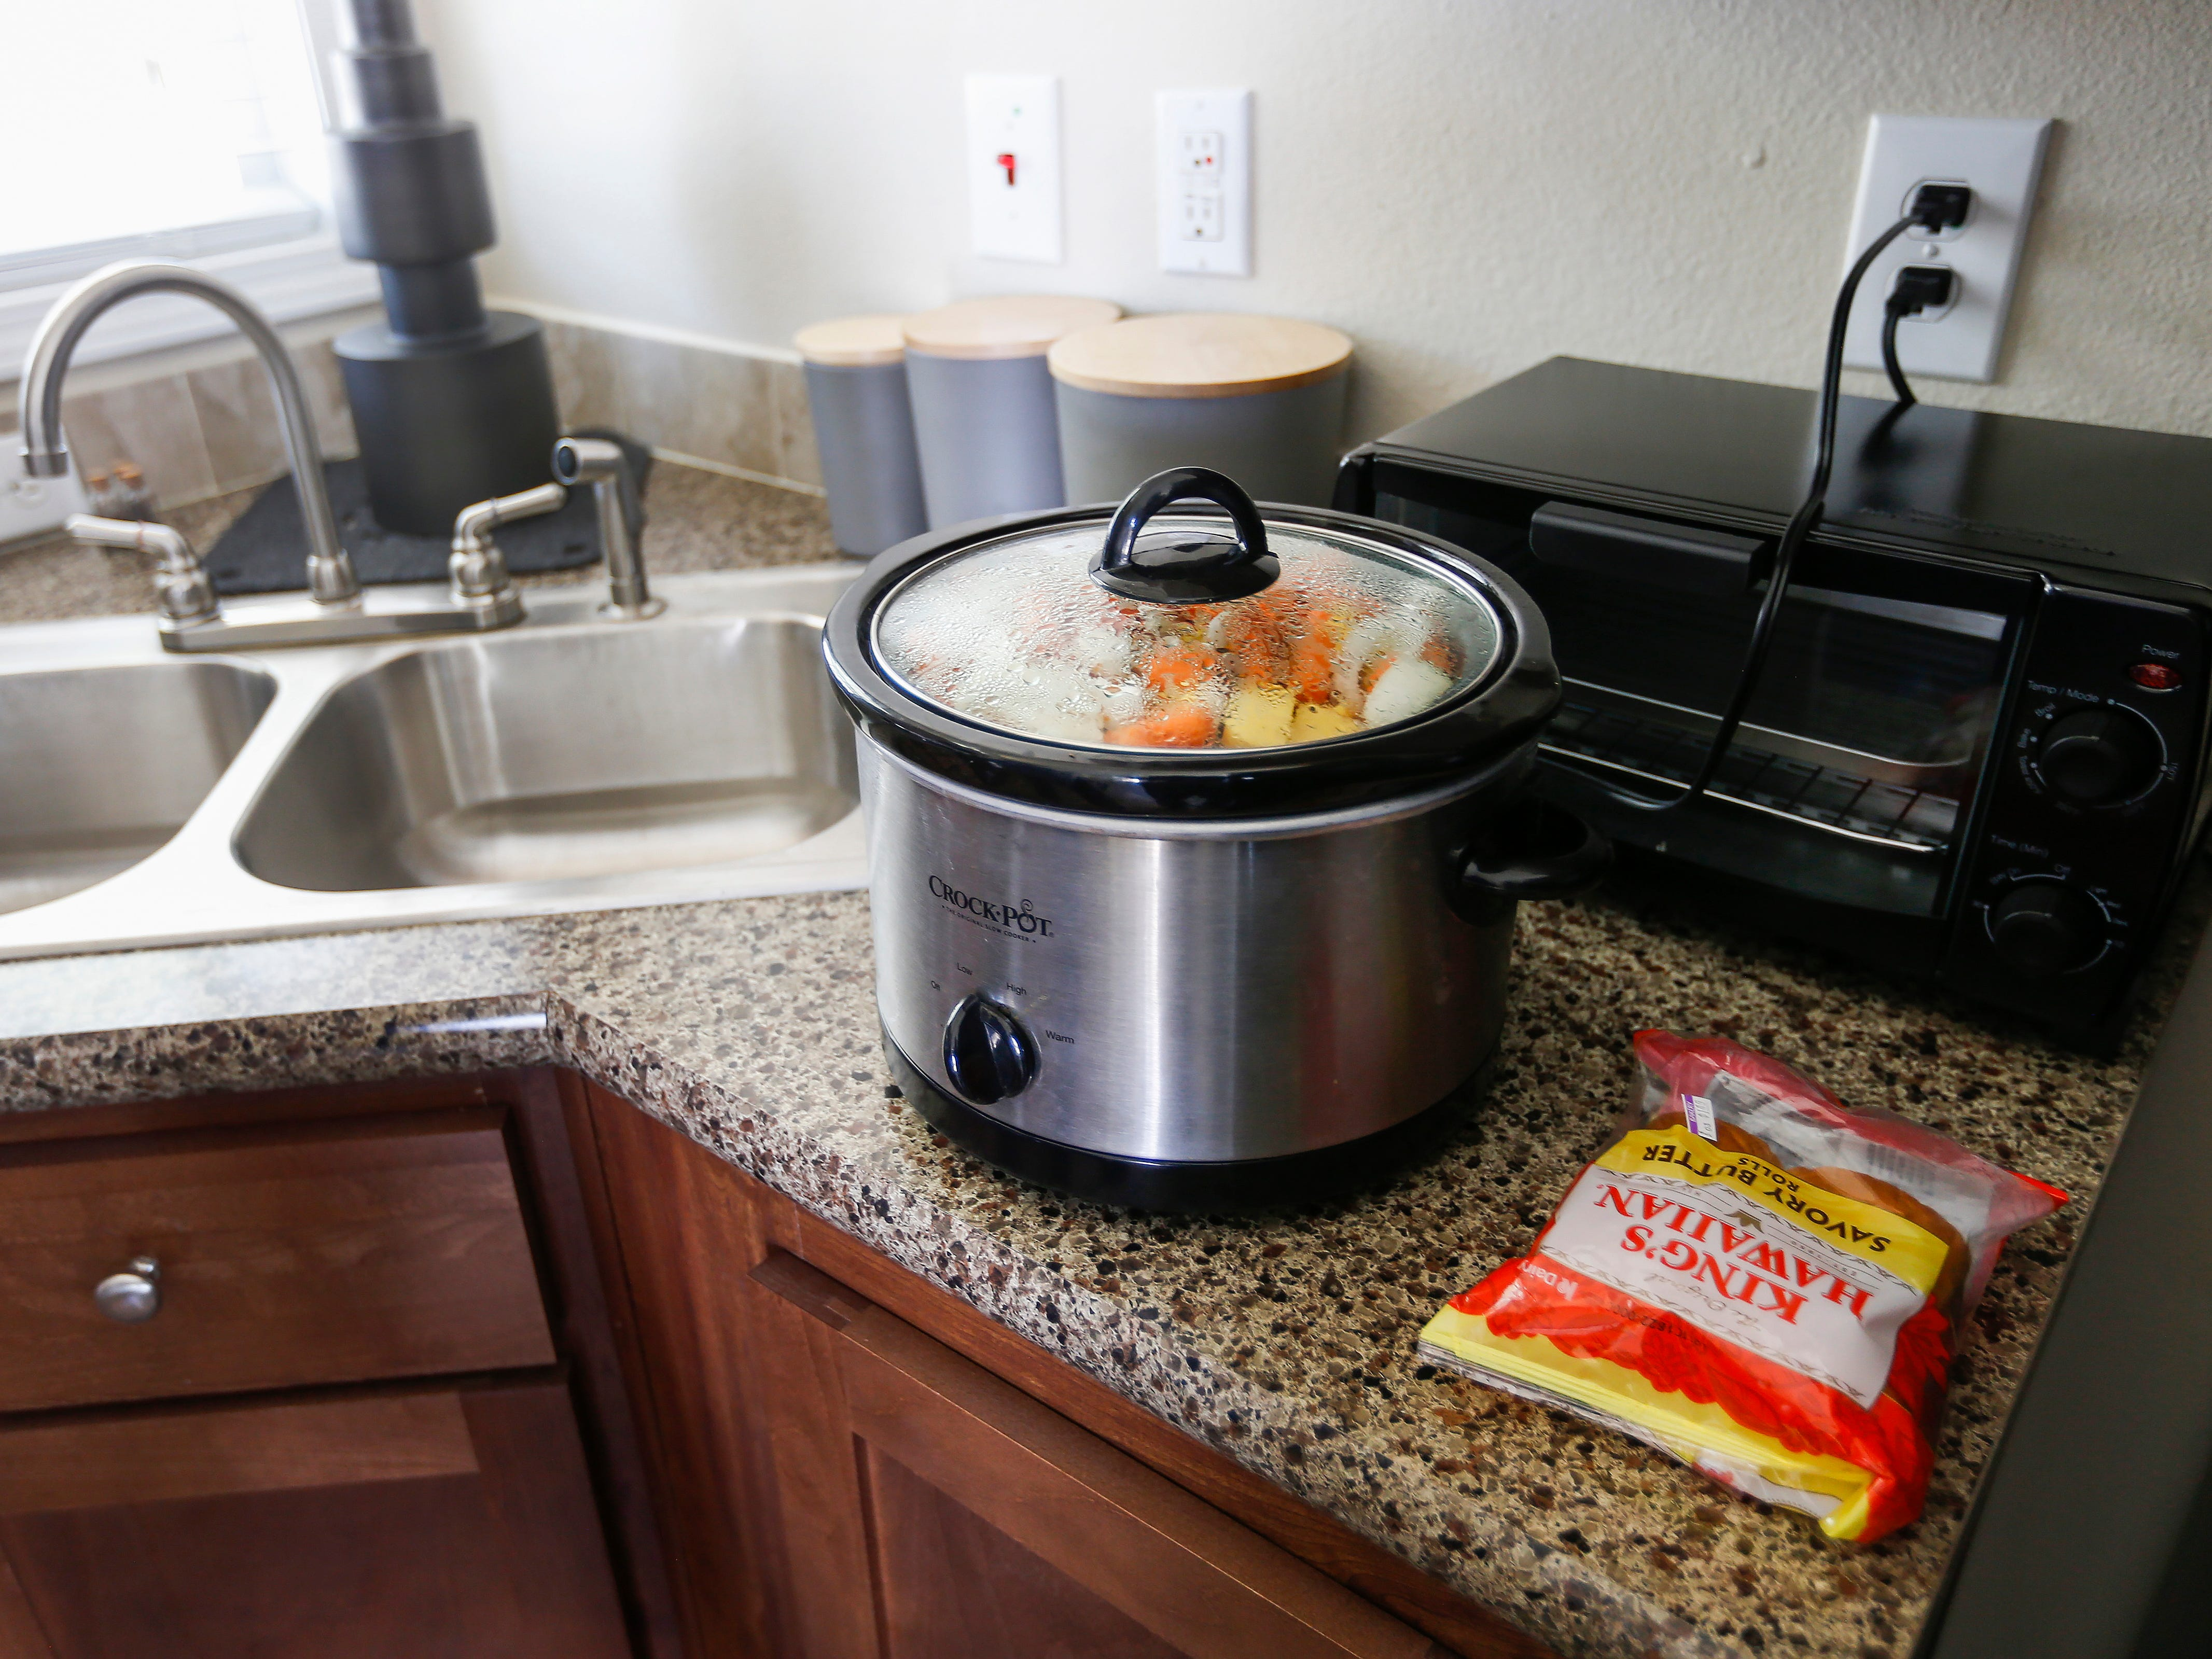 Tommy Yarberry, the first resident to move into Eden Village, was welcomed with a pot roast cooking in his slow cooker during the Grand Opening Ceremony at Eden Village on Tuesday, Aug. 28, 2018.